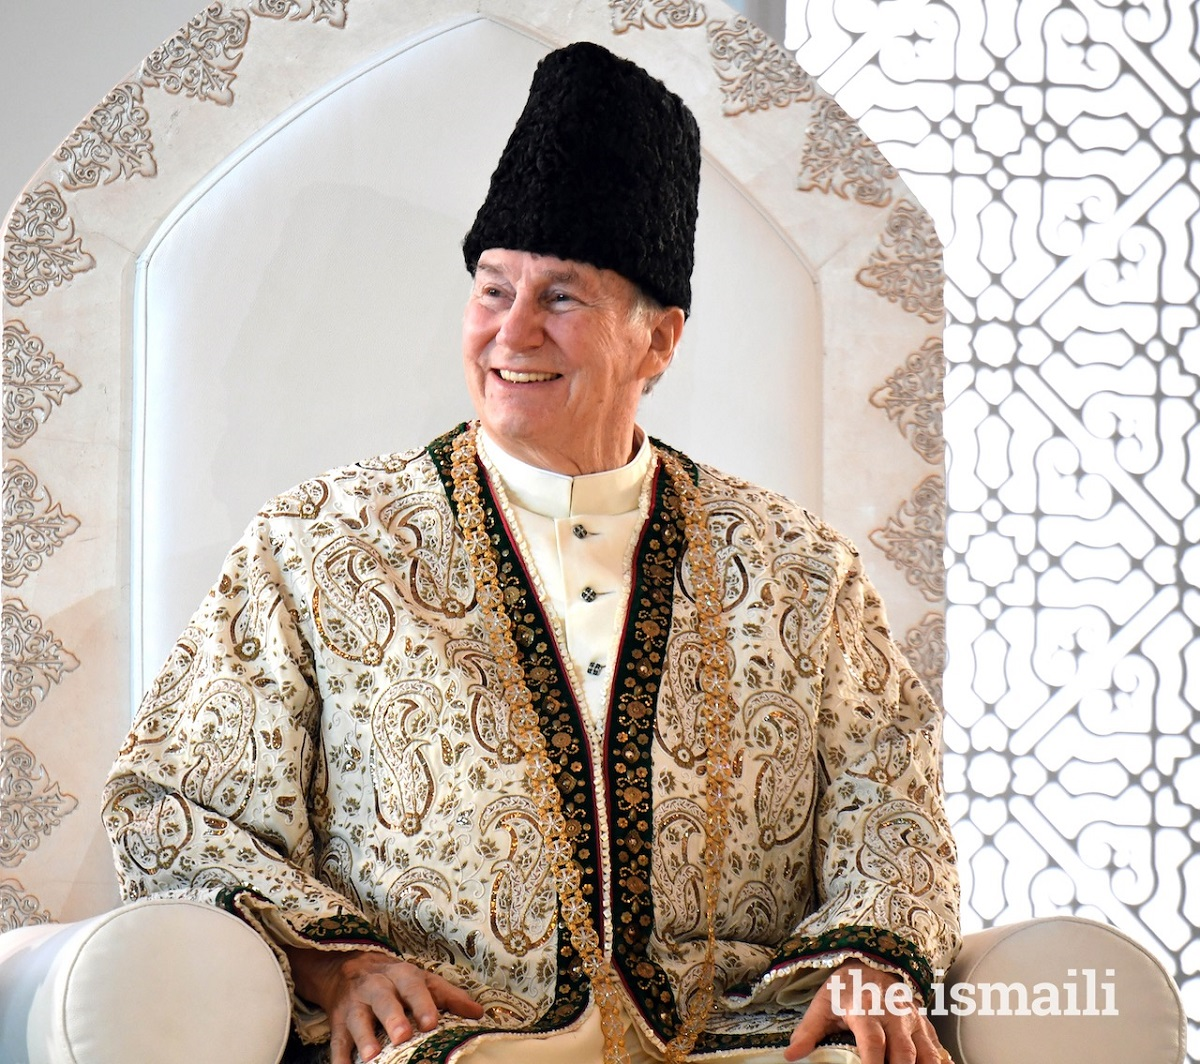 In Talika Mubarak on the occasion of his 84th birthday, Mawlana Hazar Imam asks us to draw comfort from the practice of our faith, appreciates the excellent work of volunteers, and conveys his loving paternal maternal blessings to the world wide Jamat